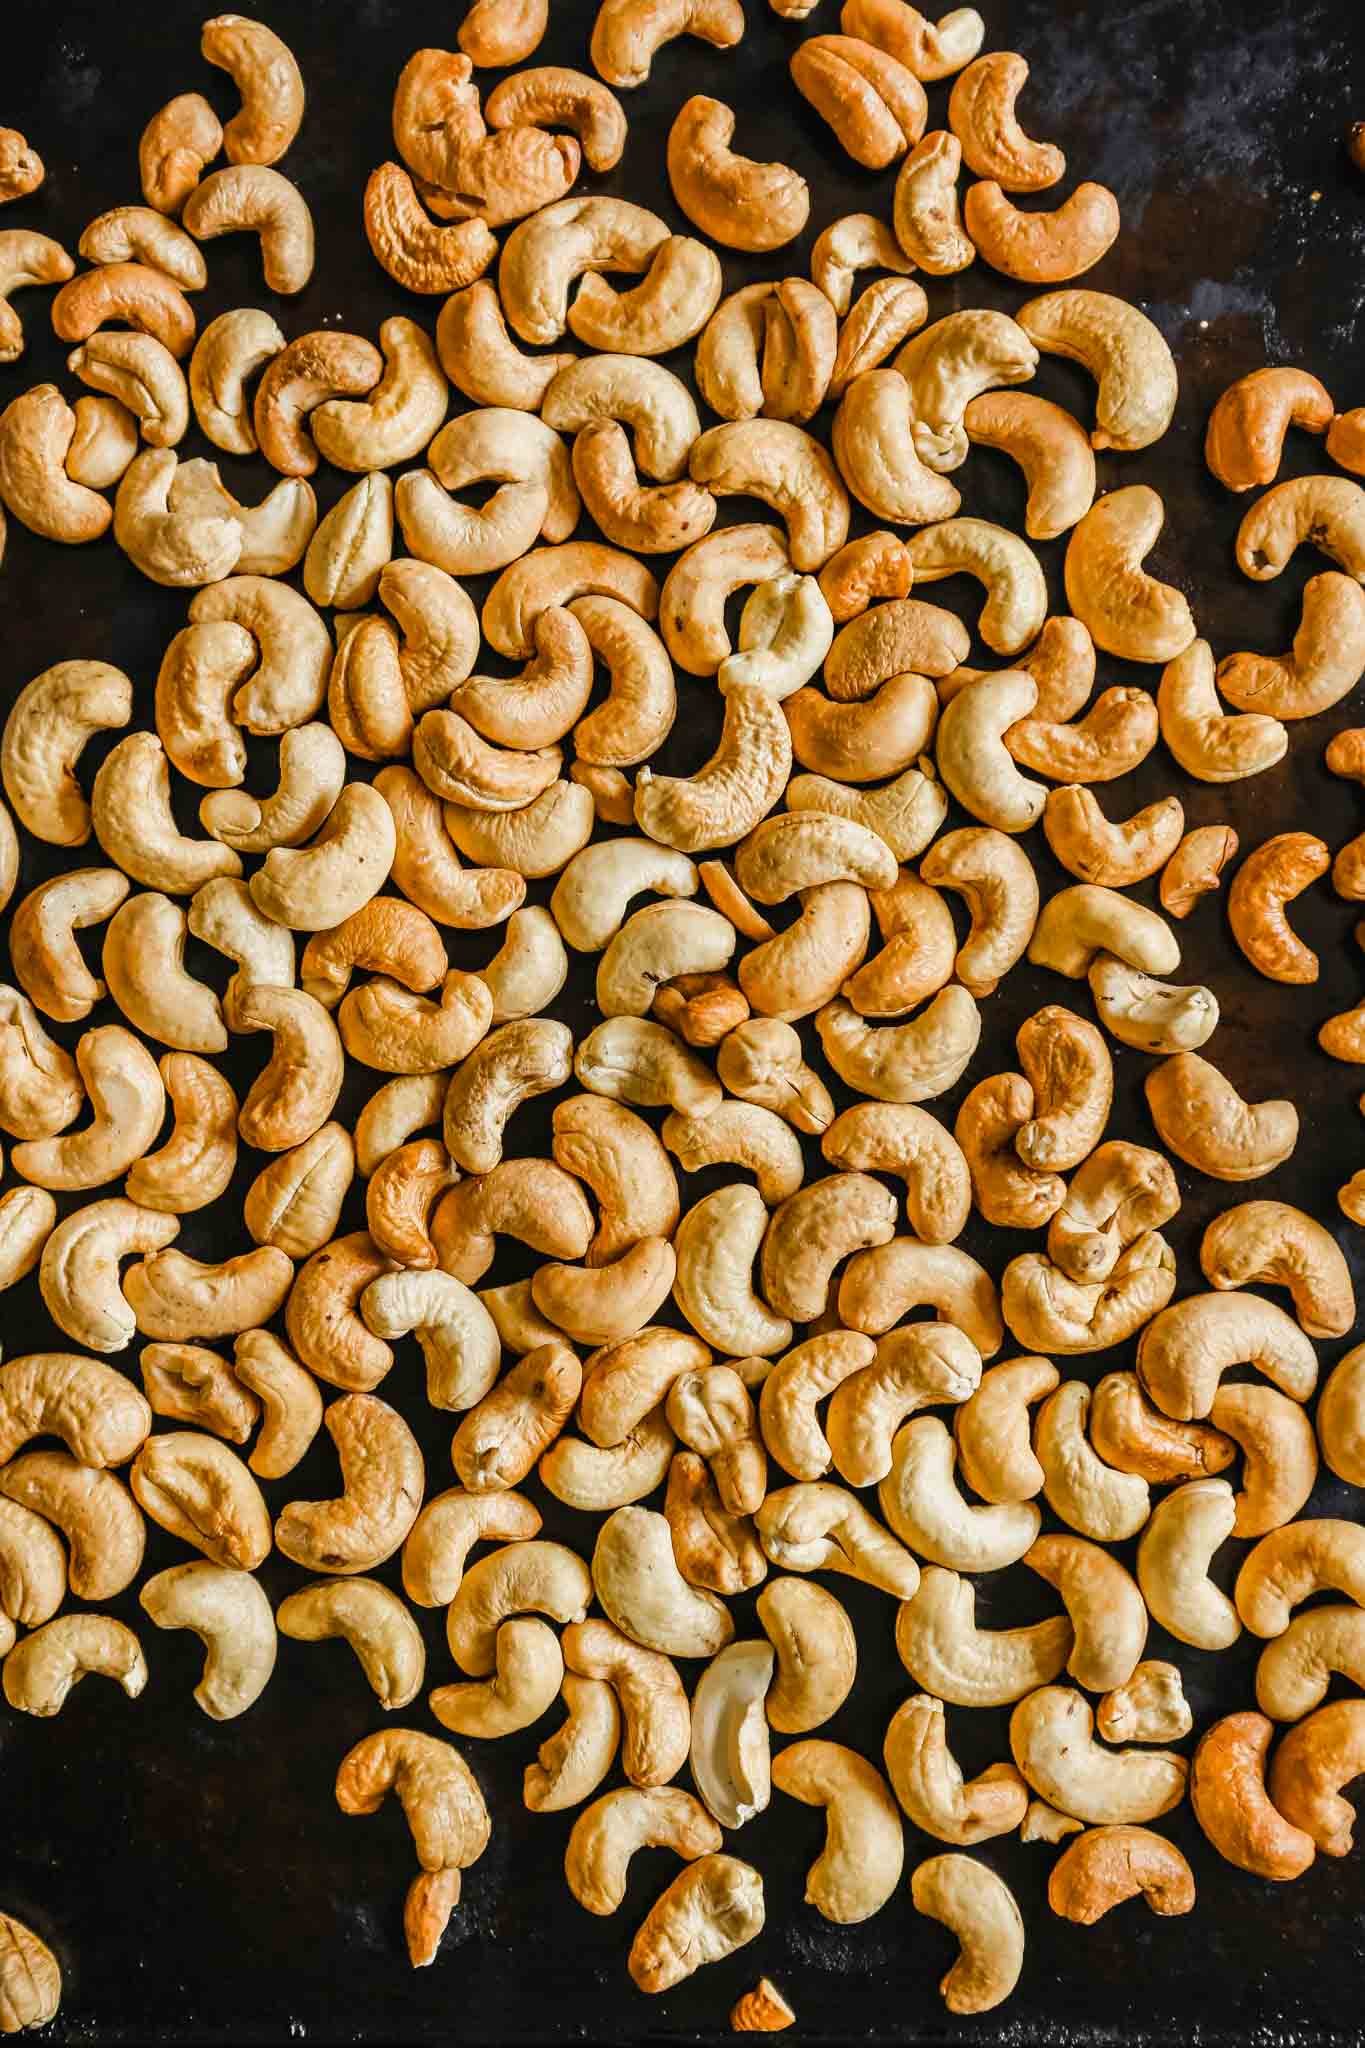 Photograph of whole roasted cashews on a dark baking sheet